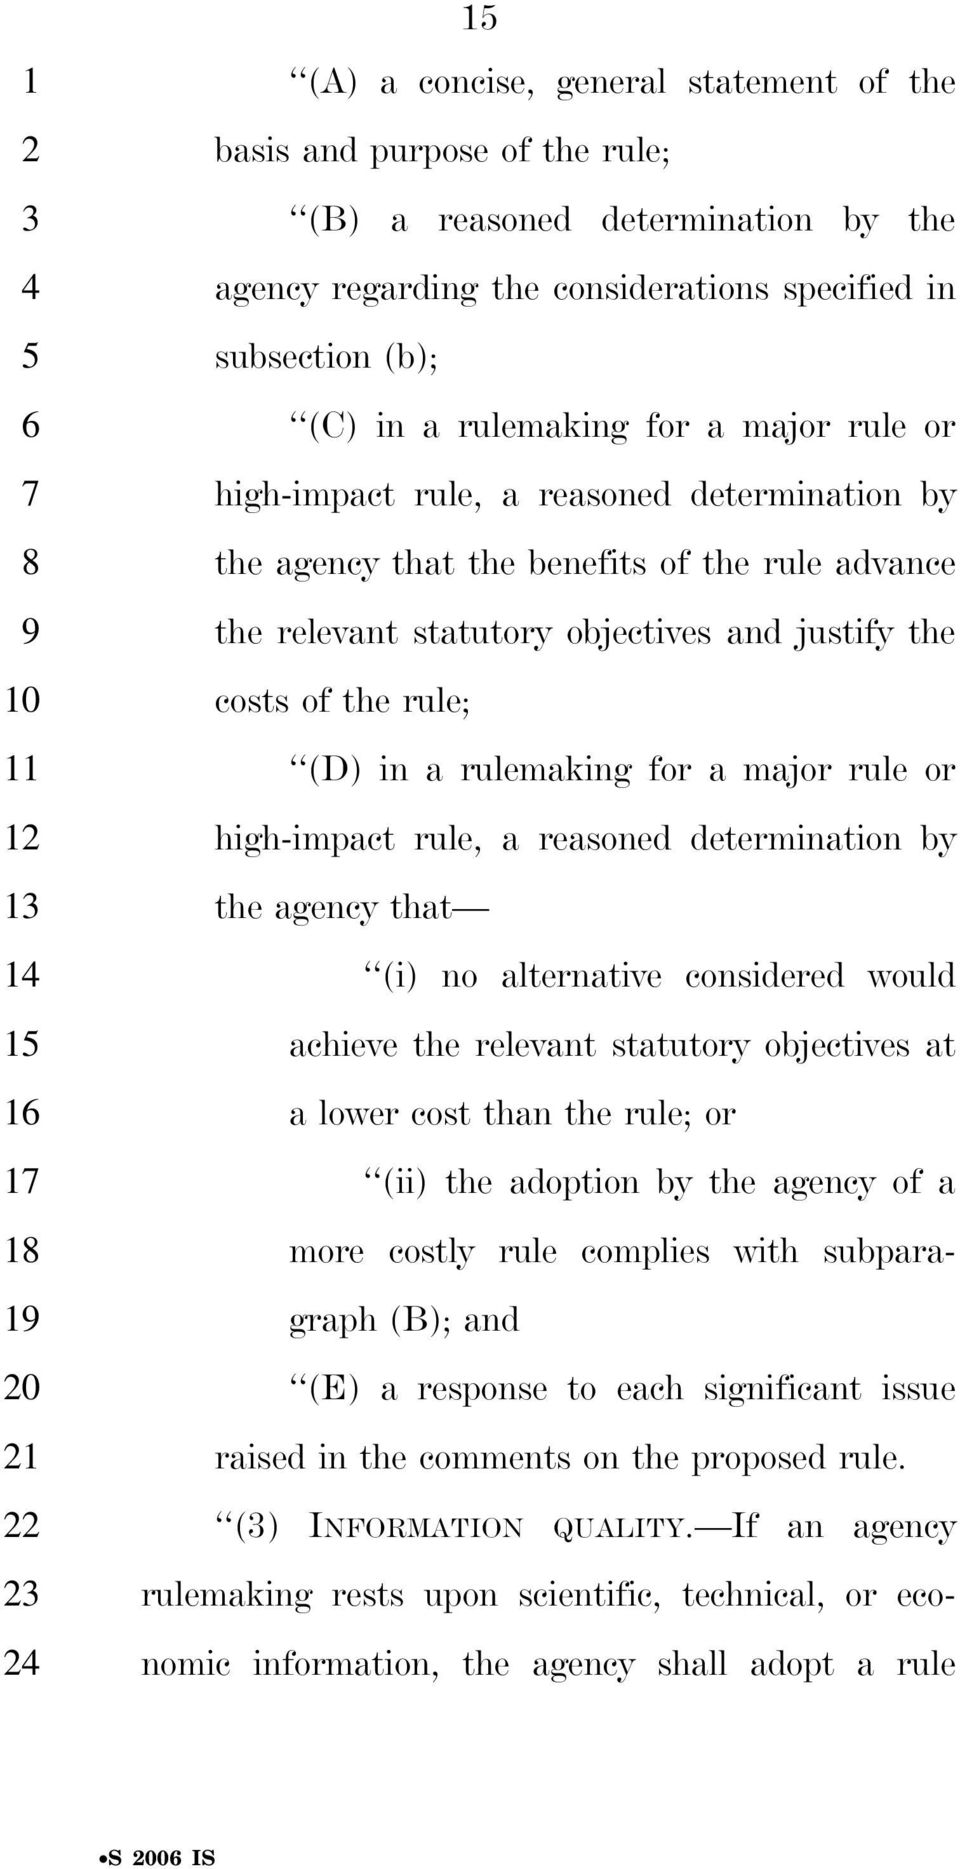 in a rulemaking for a major rule or high-impact rule, a reasoned determination by the agency that (i) no alternative considered would achieve the relevant statutory objectives at a lower cost than